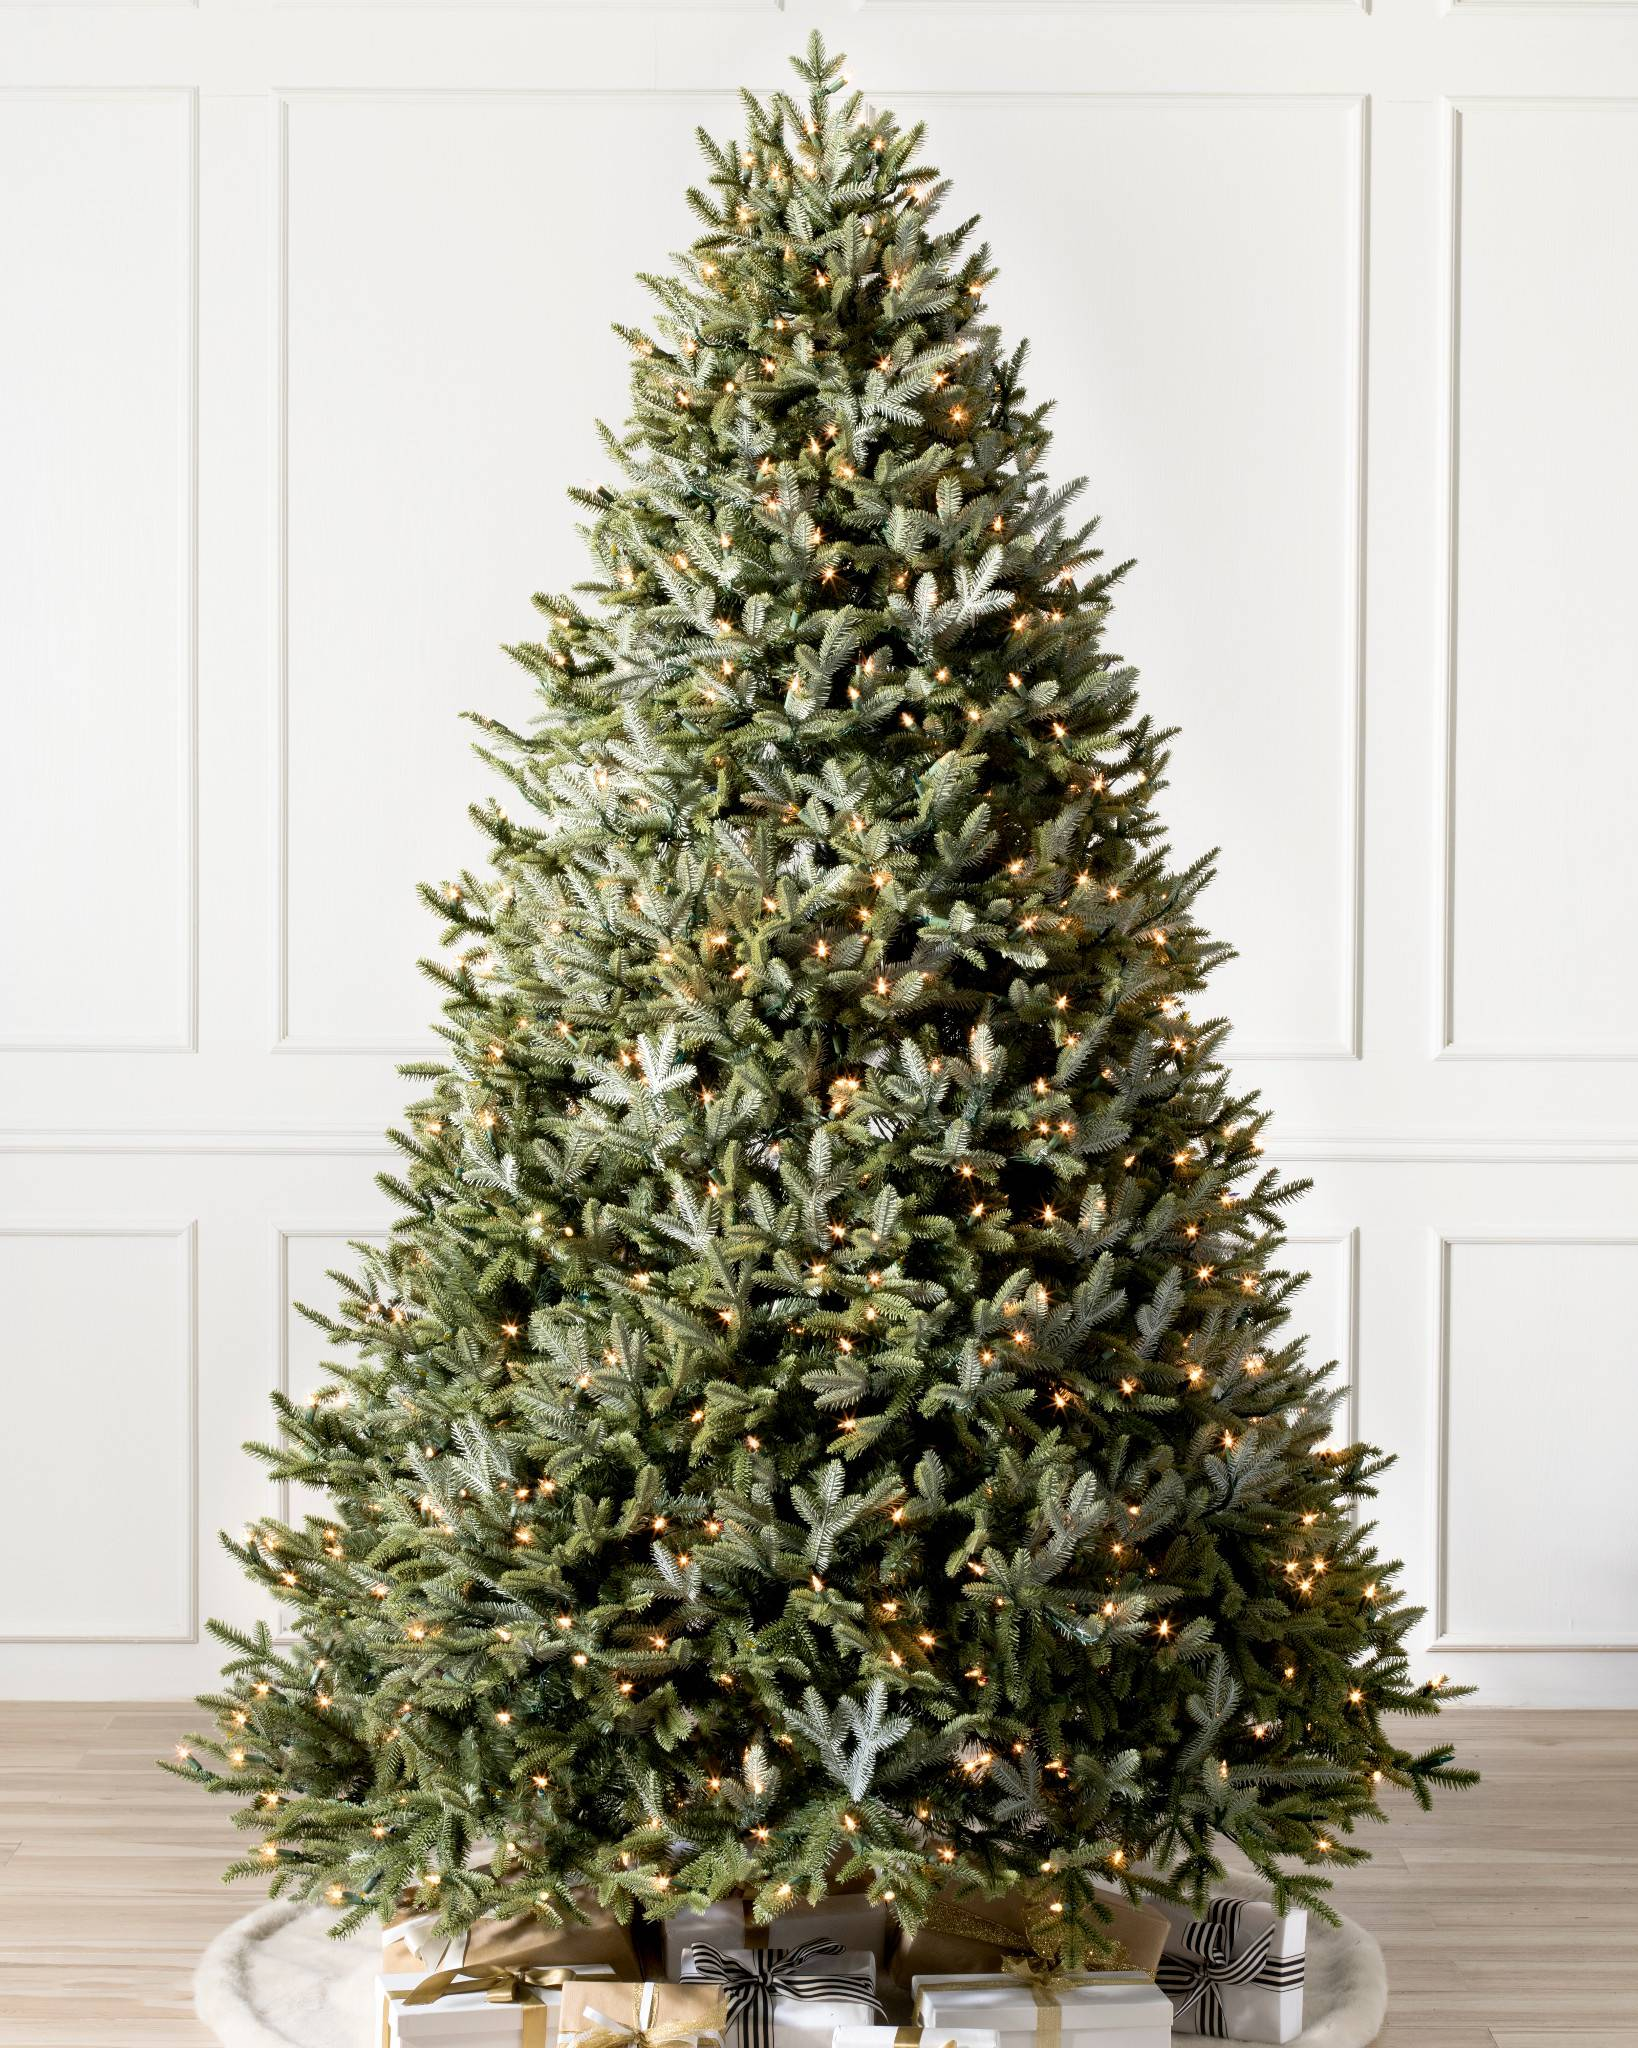 bh fraser fir tree 1 - Christmas Trees With Lights